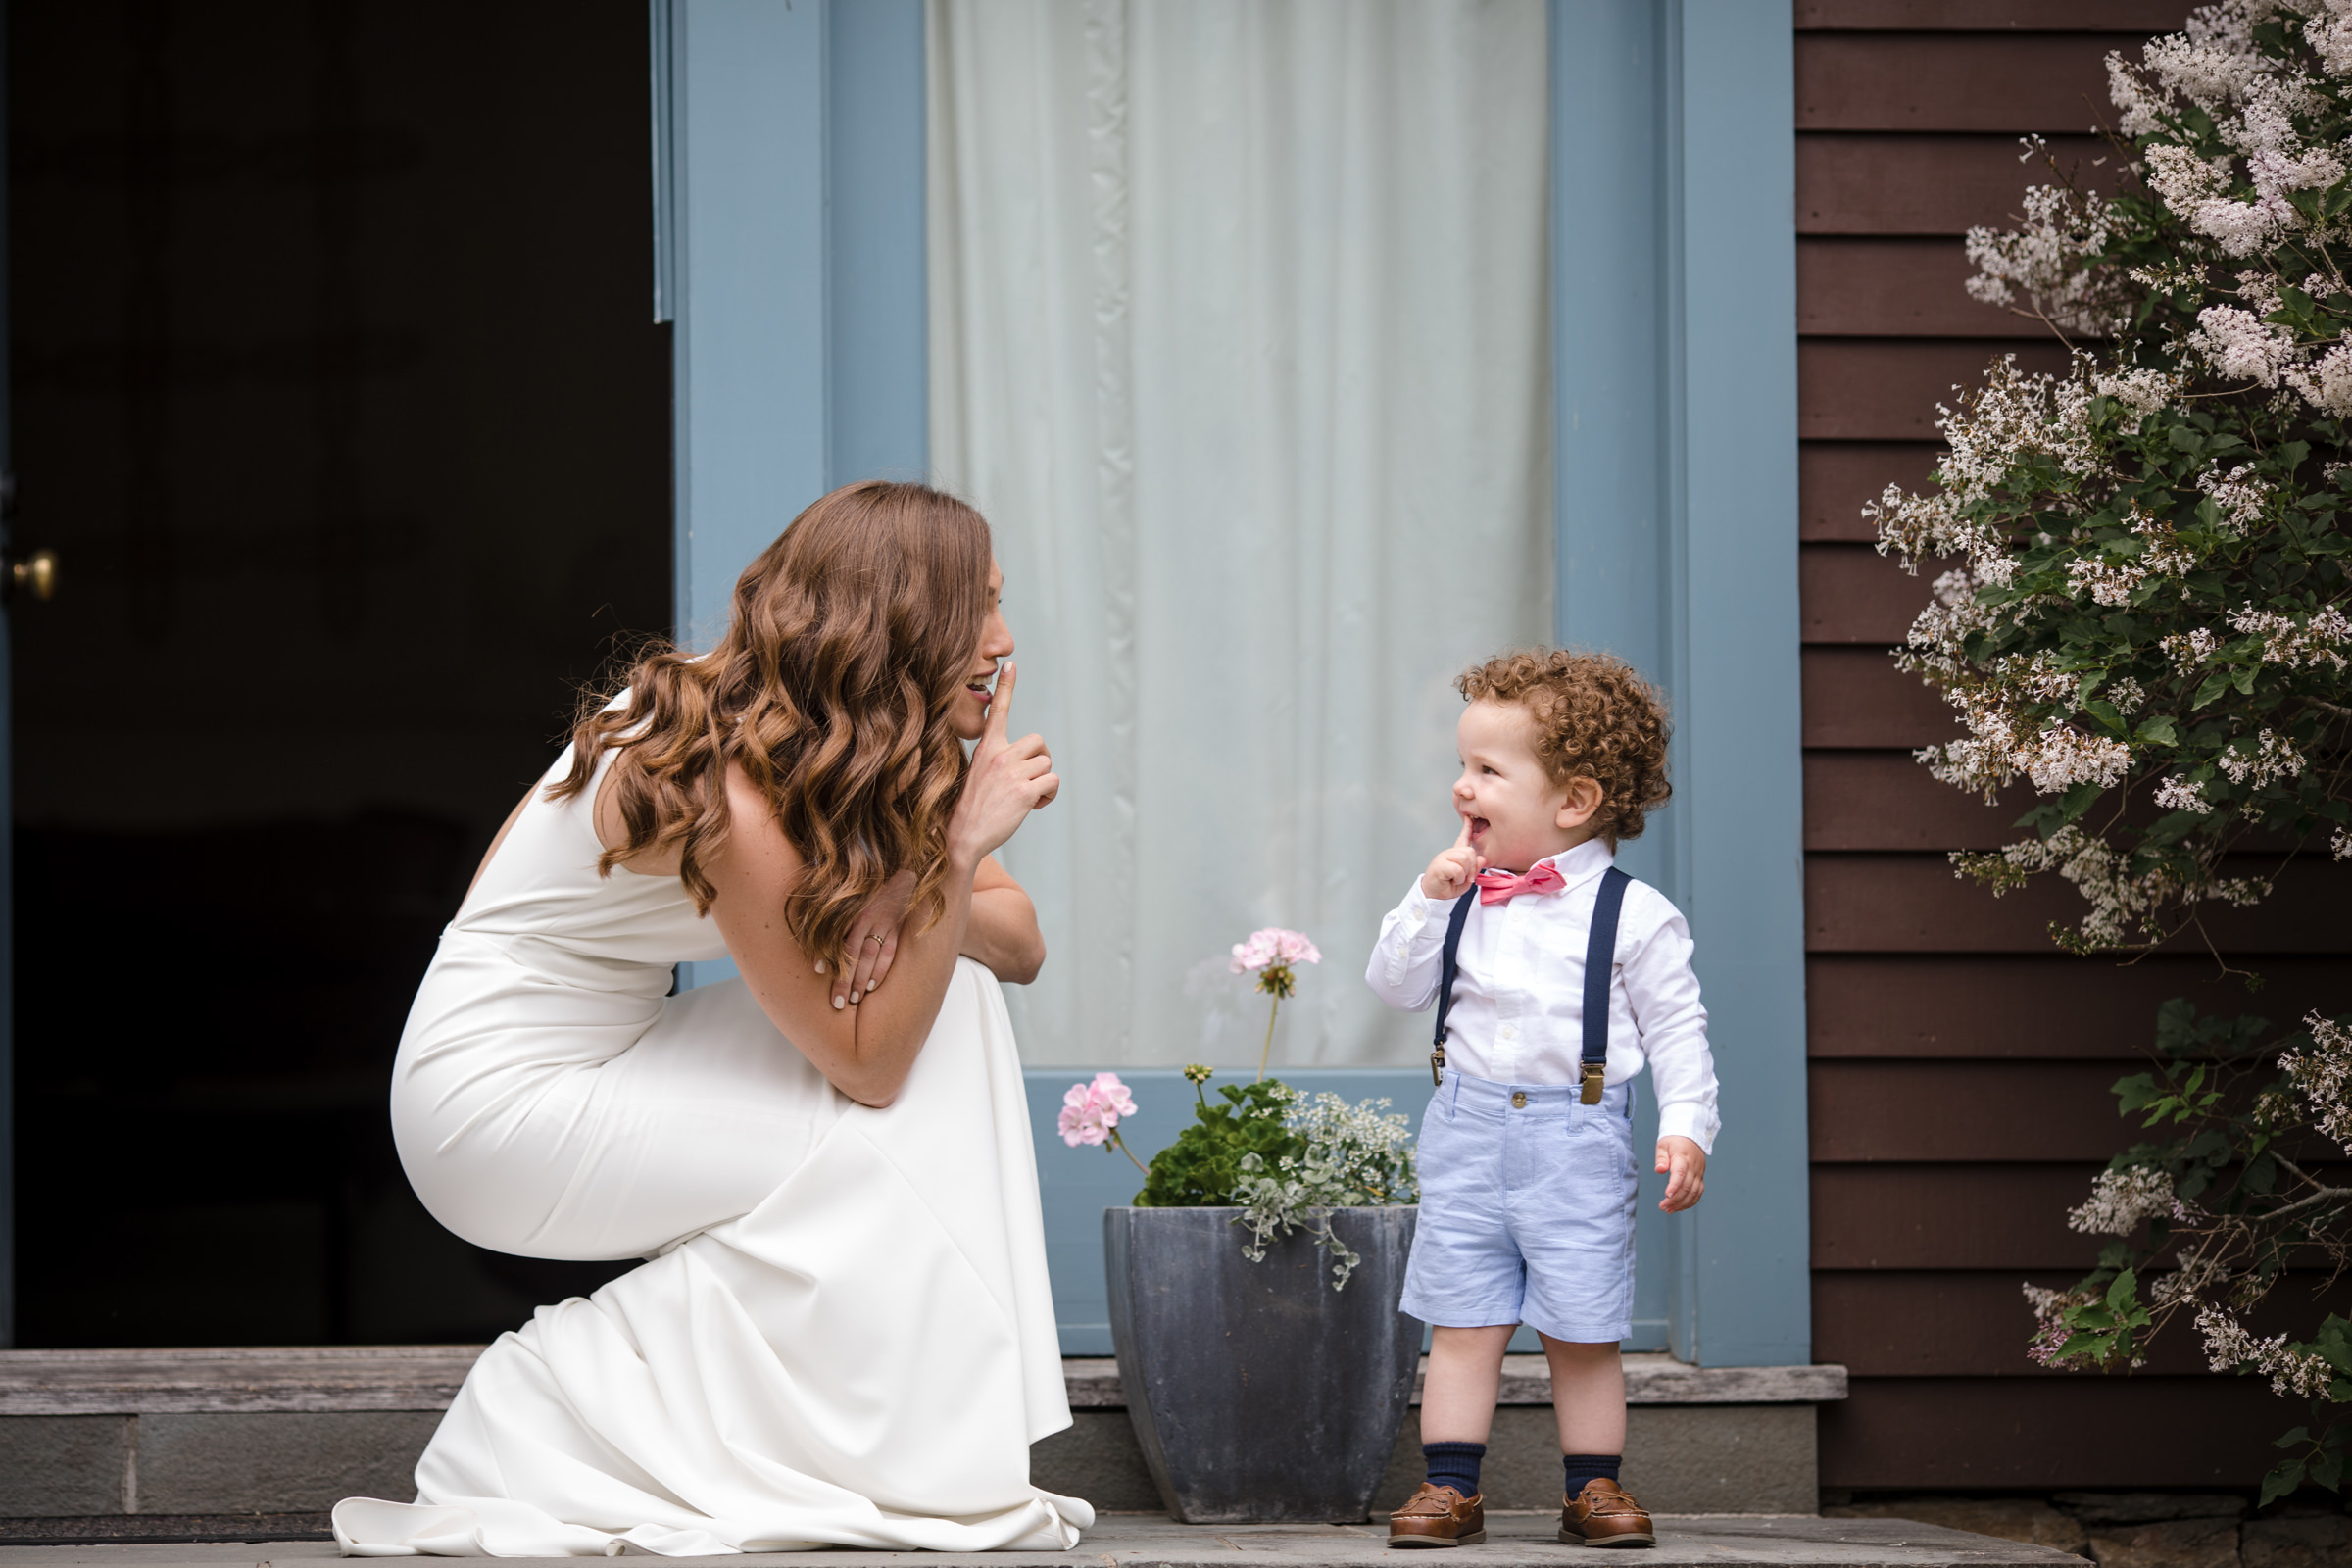 Toddler wearing red bow tie, light blue shorts and suspenders - photo by Susan Stripling